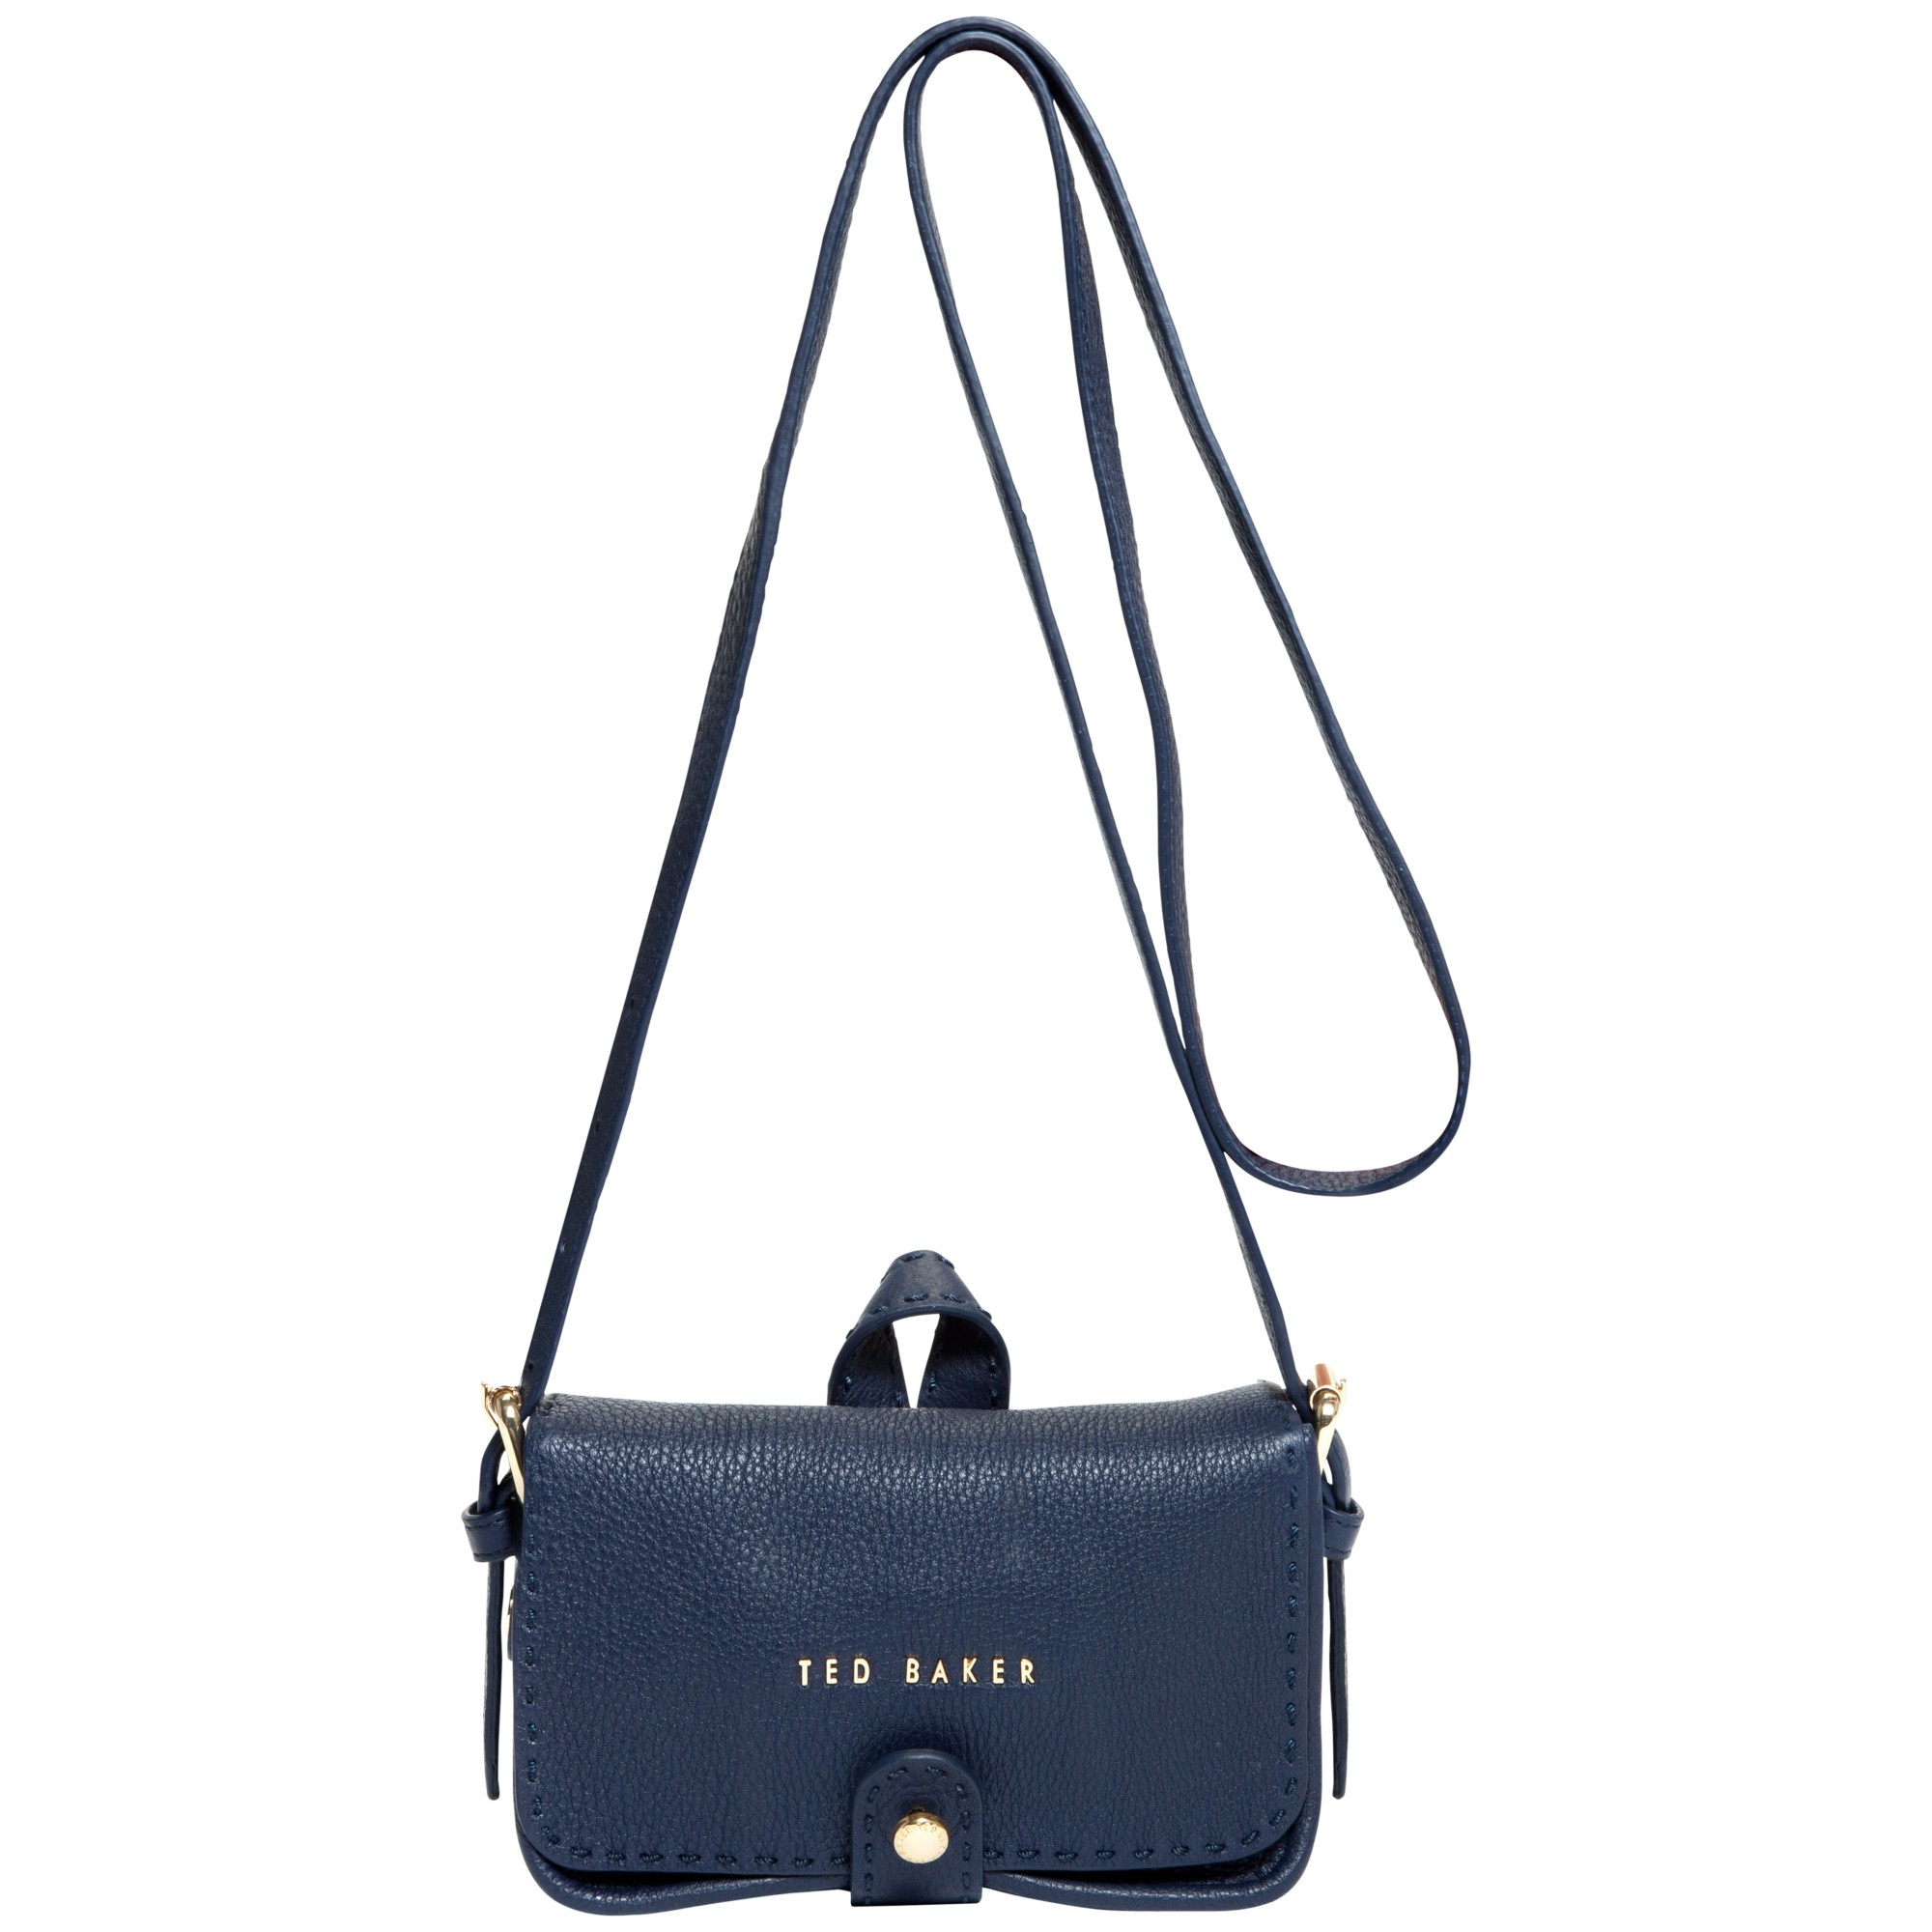 426dbcab9b09 Ted Baker Minimar Sch Leather Cross Body Bag In Blue Lyst. Persian Blue  Large Tote ...